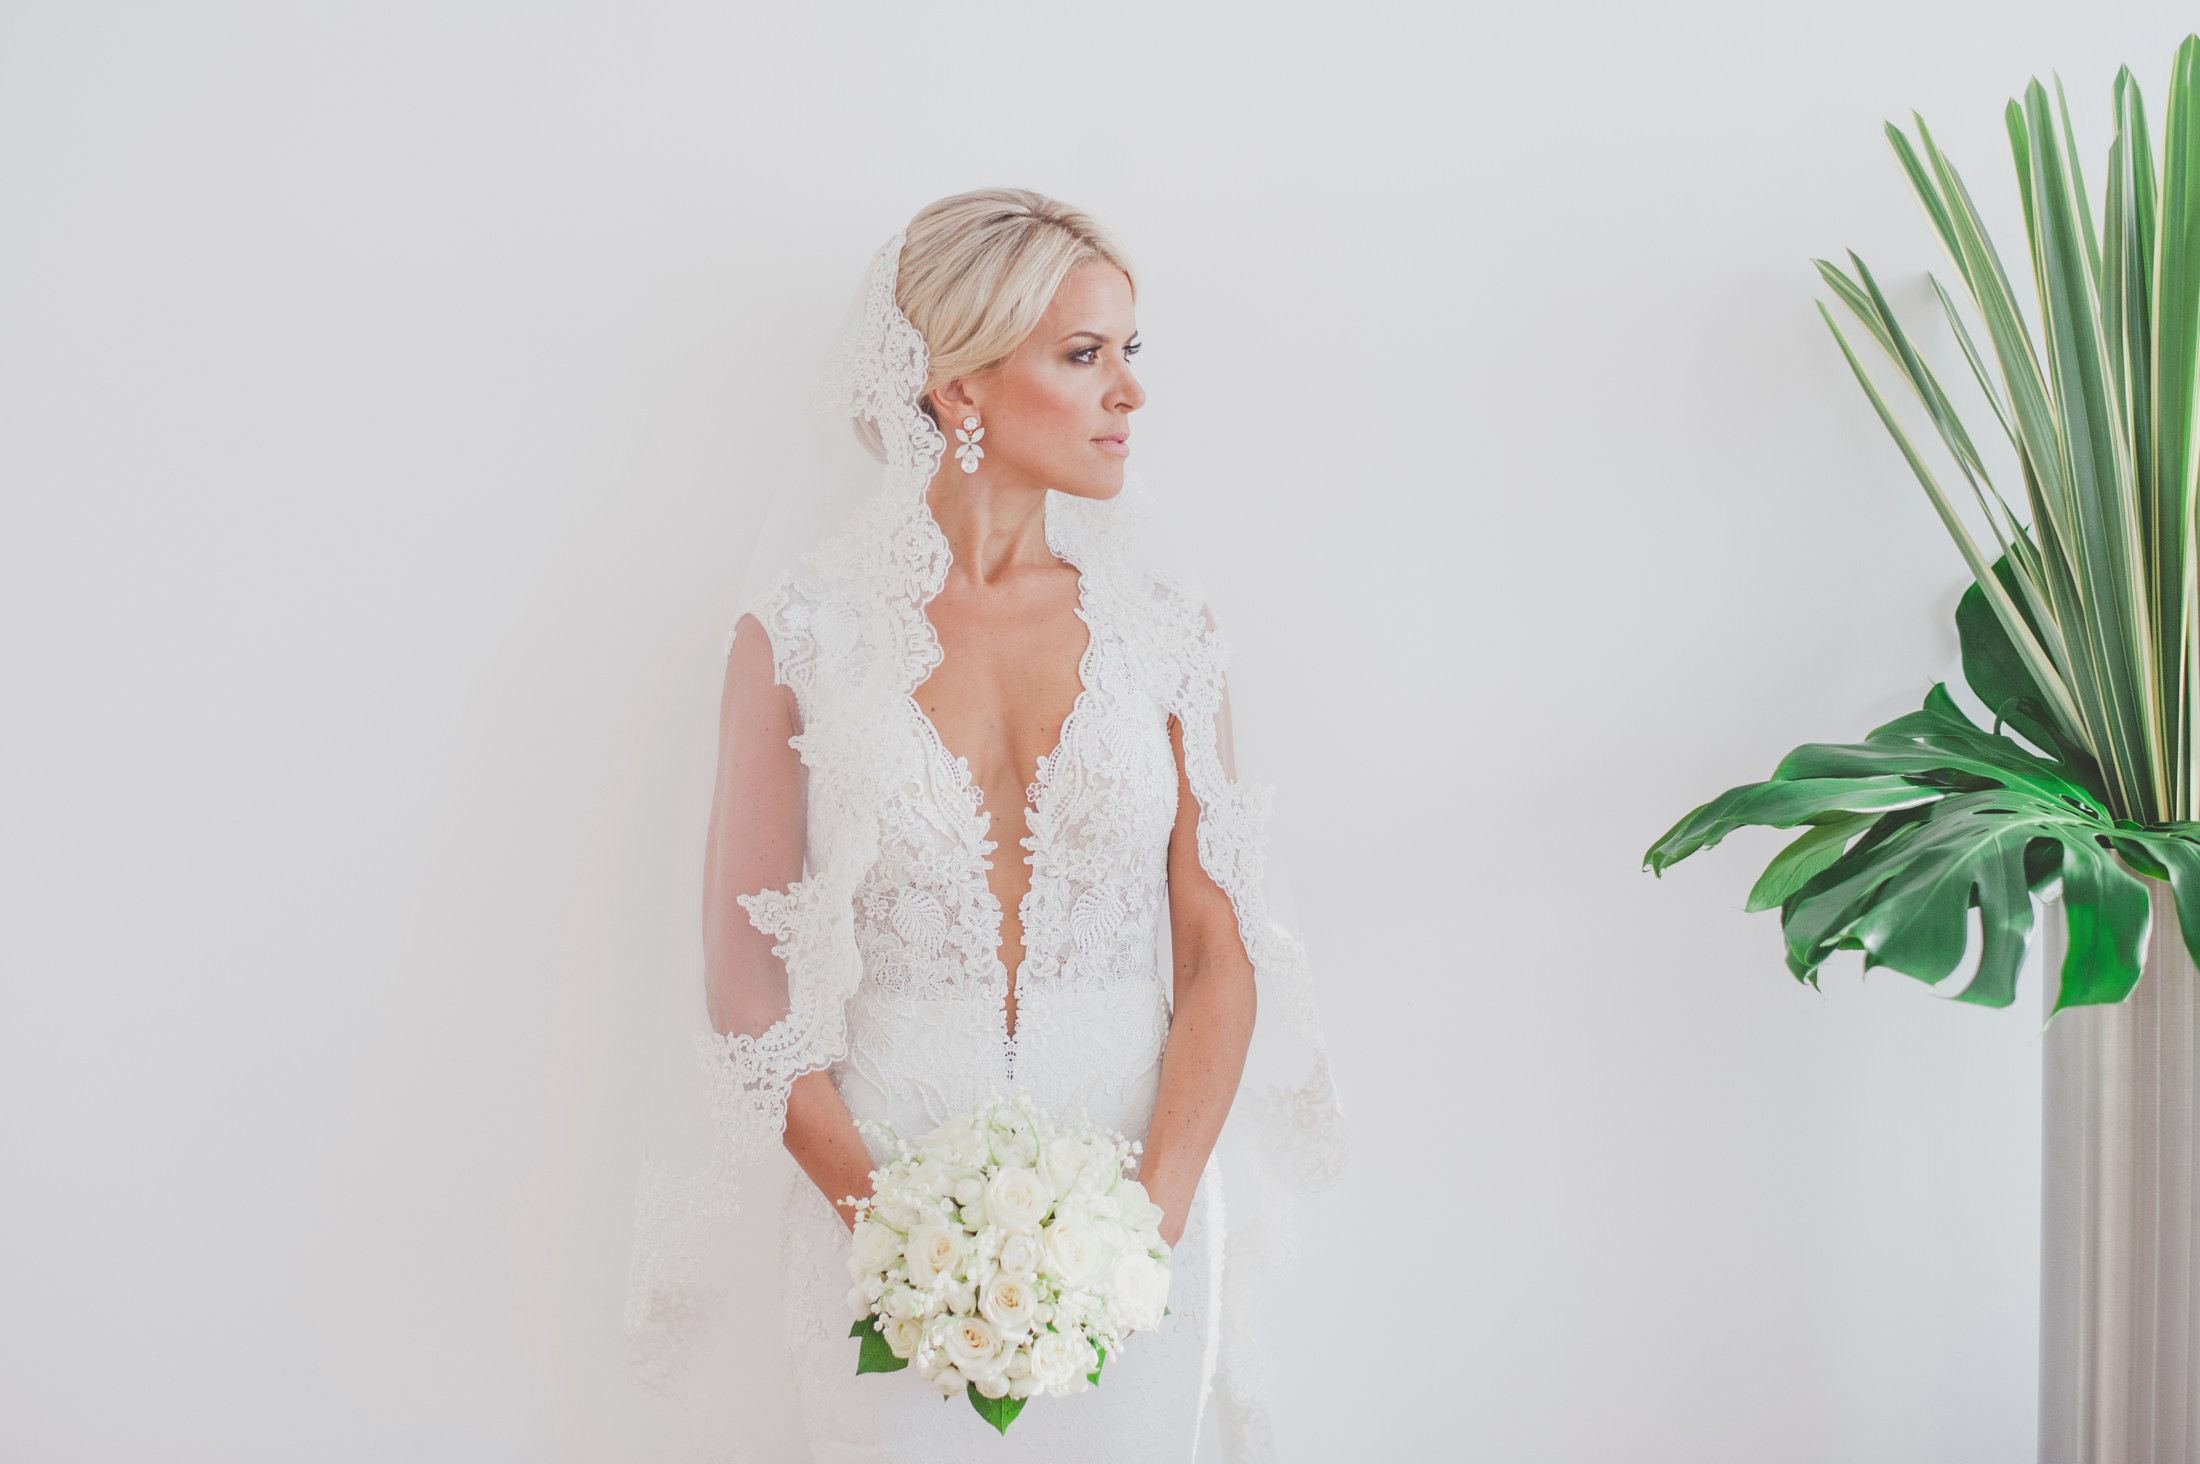 bride's portrait with a light green plant